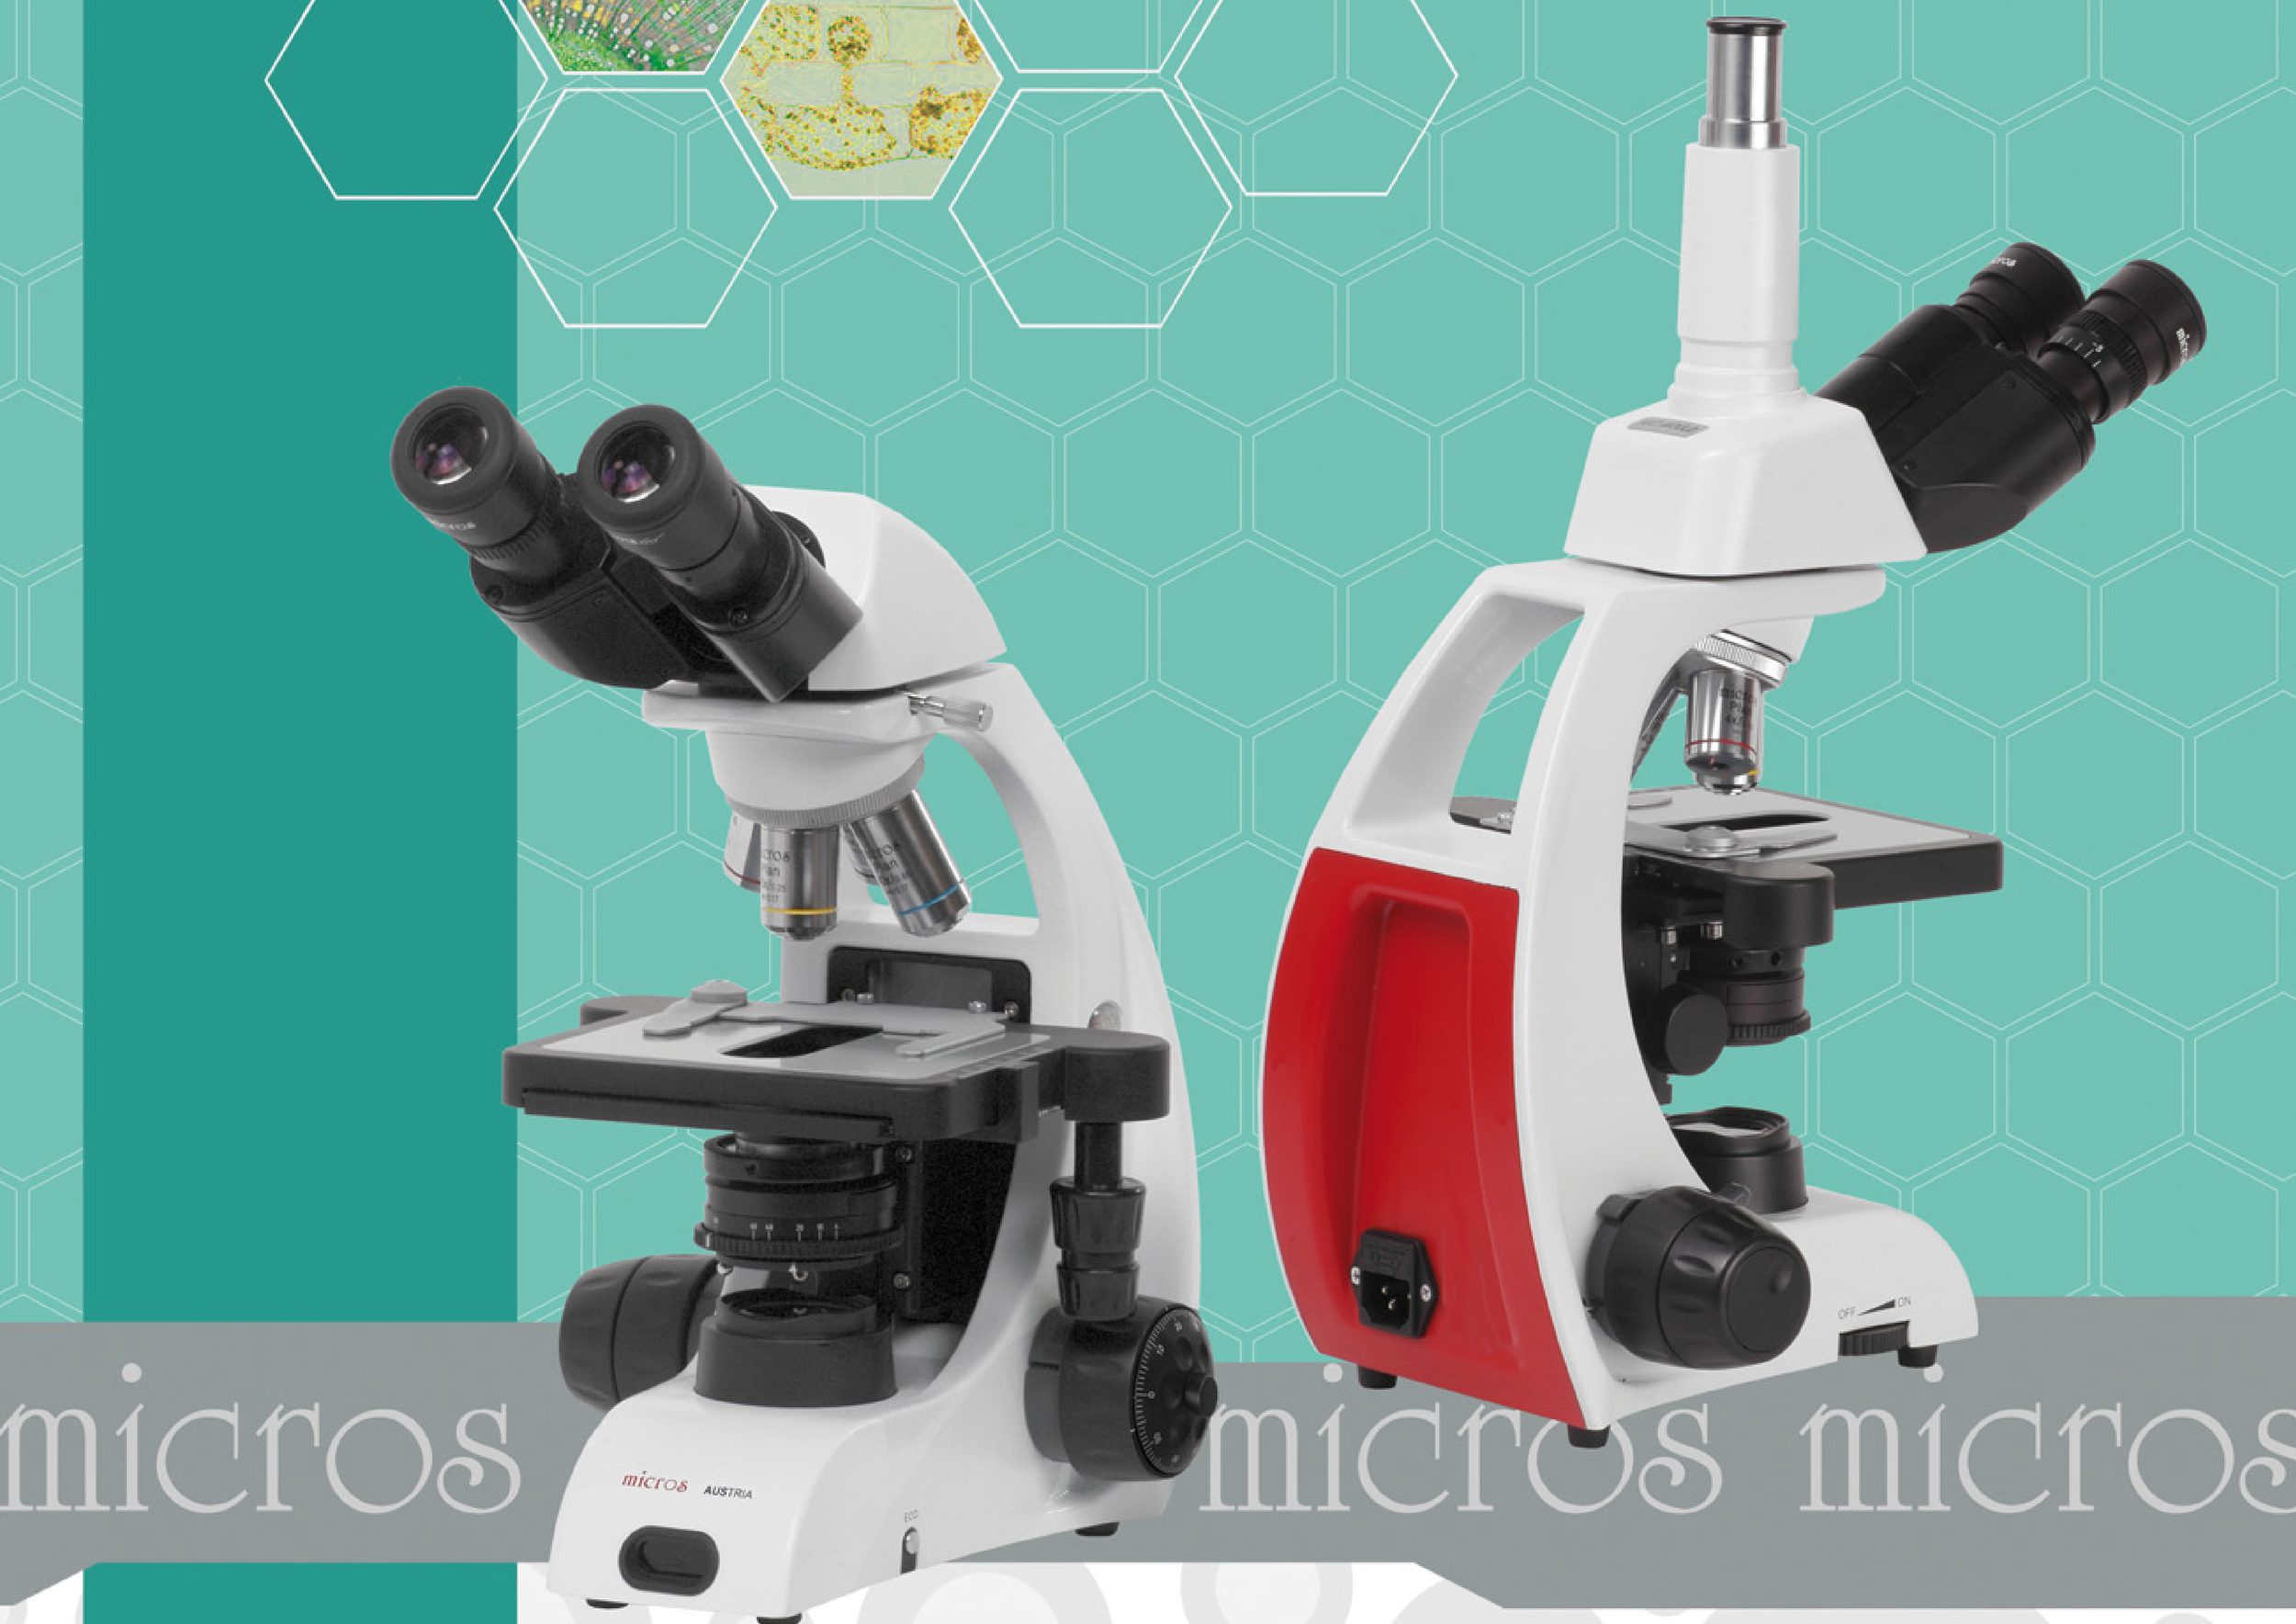 20170327_Microscopes_1500px-01.png